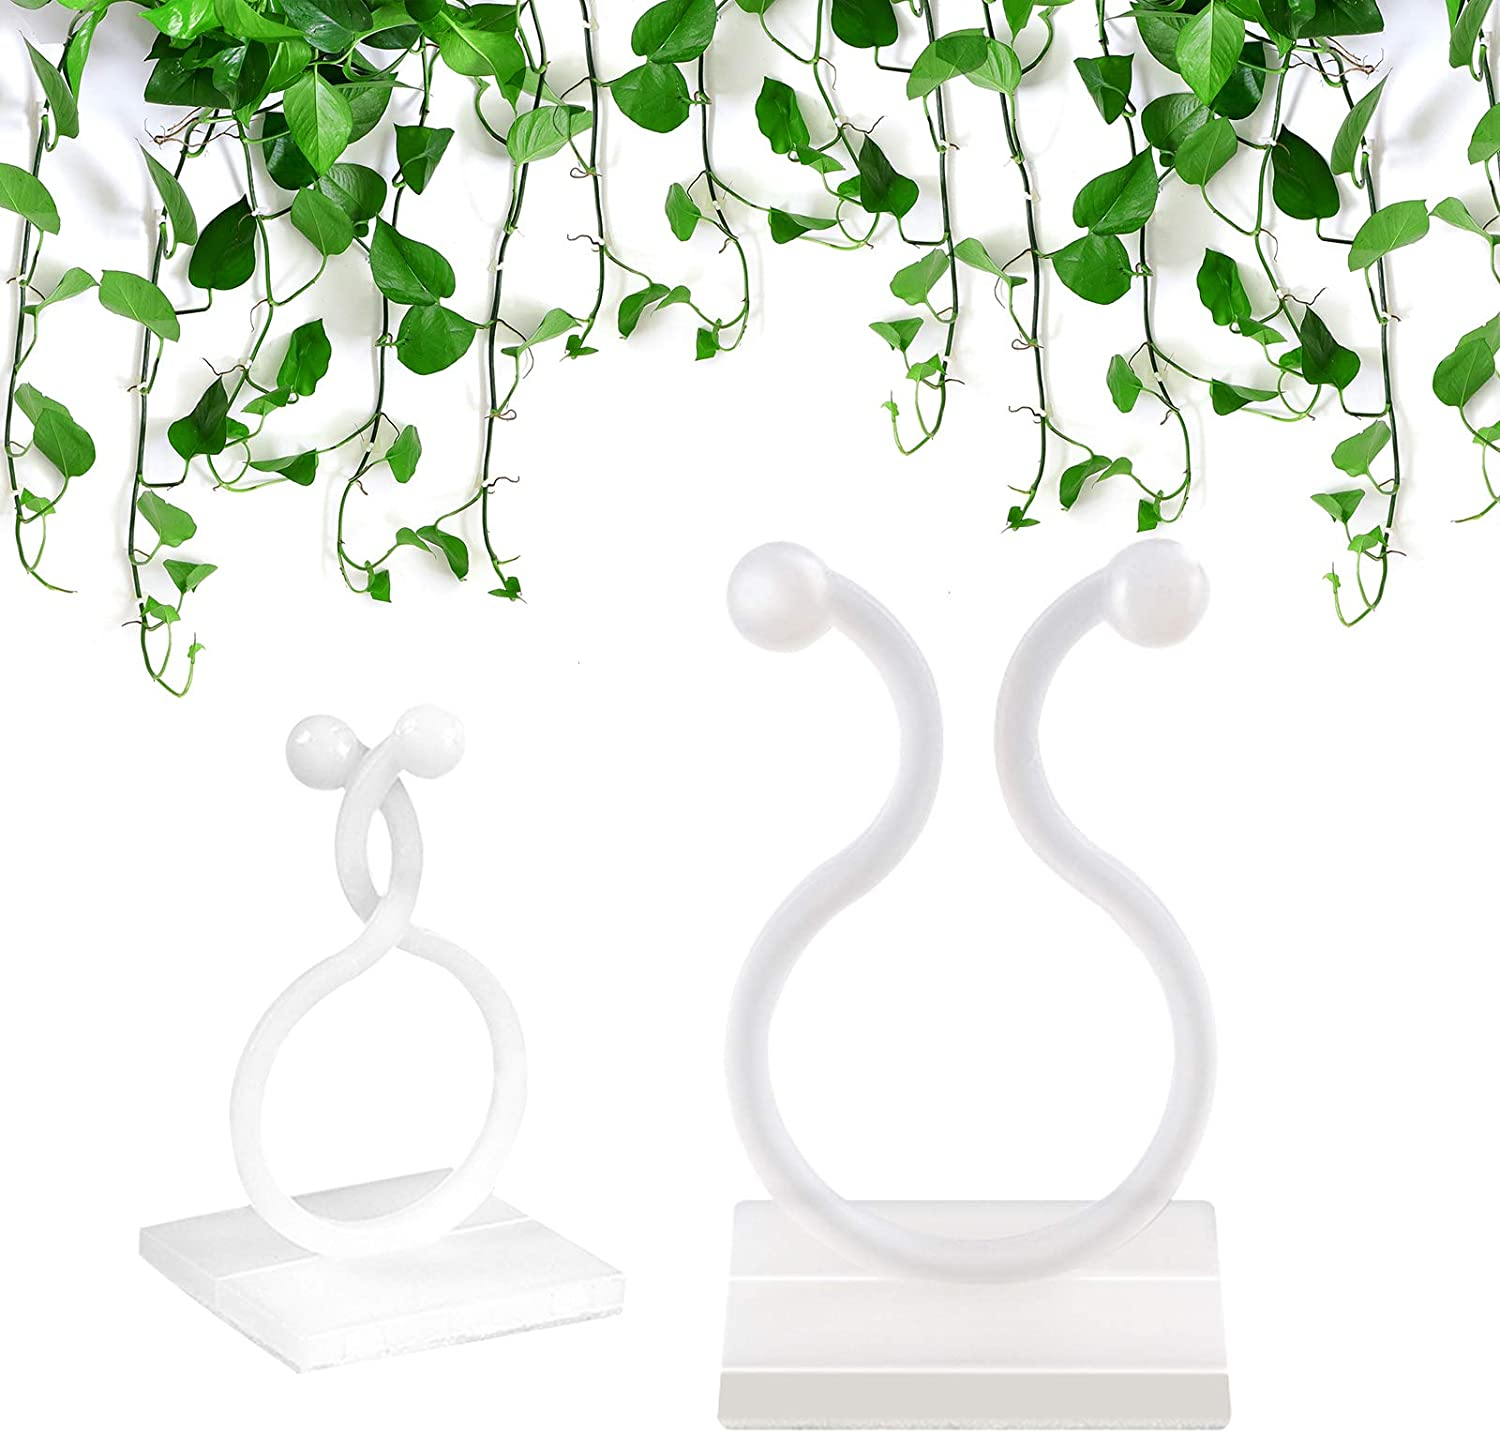 CHAOMIC 100PCS Invisible Wall Vines Fixing Clips Plant Climbing Wall Fixture Clips Vines Self-Adhesive Hook Clip Vine Plant Climbing Wall Fixer Vines Holder for Home Decoration (White,M)